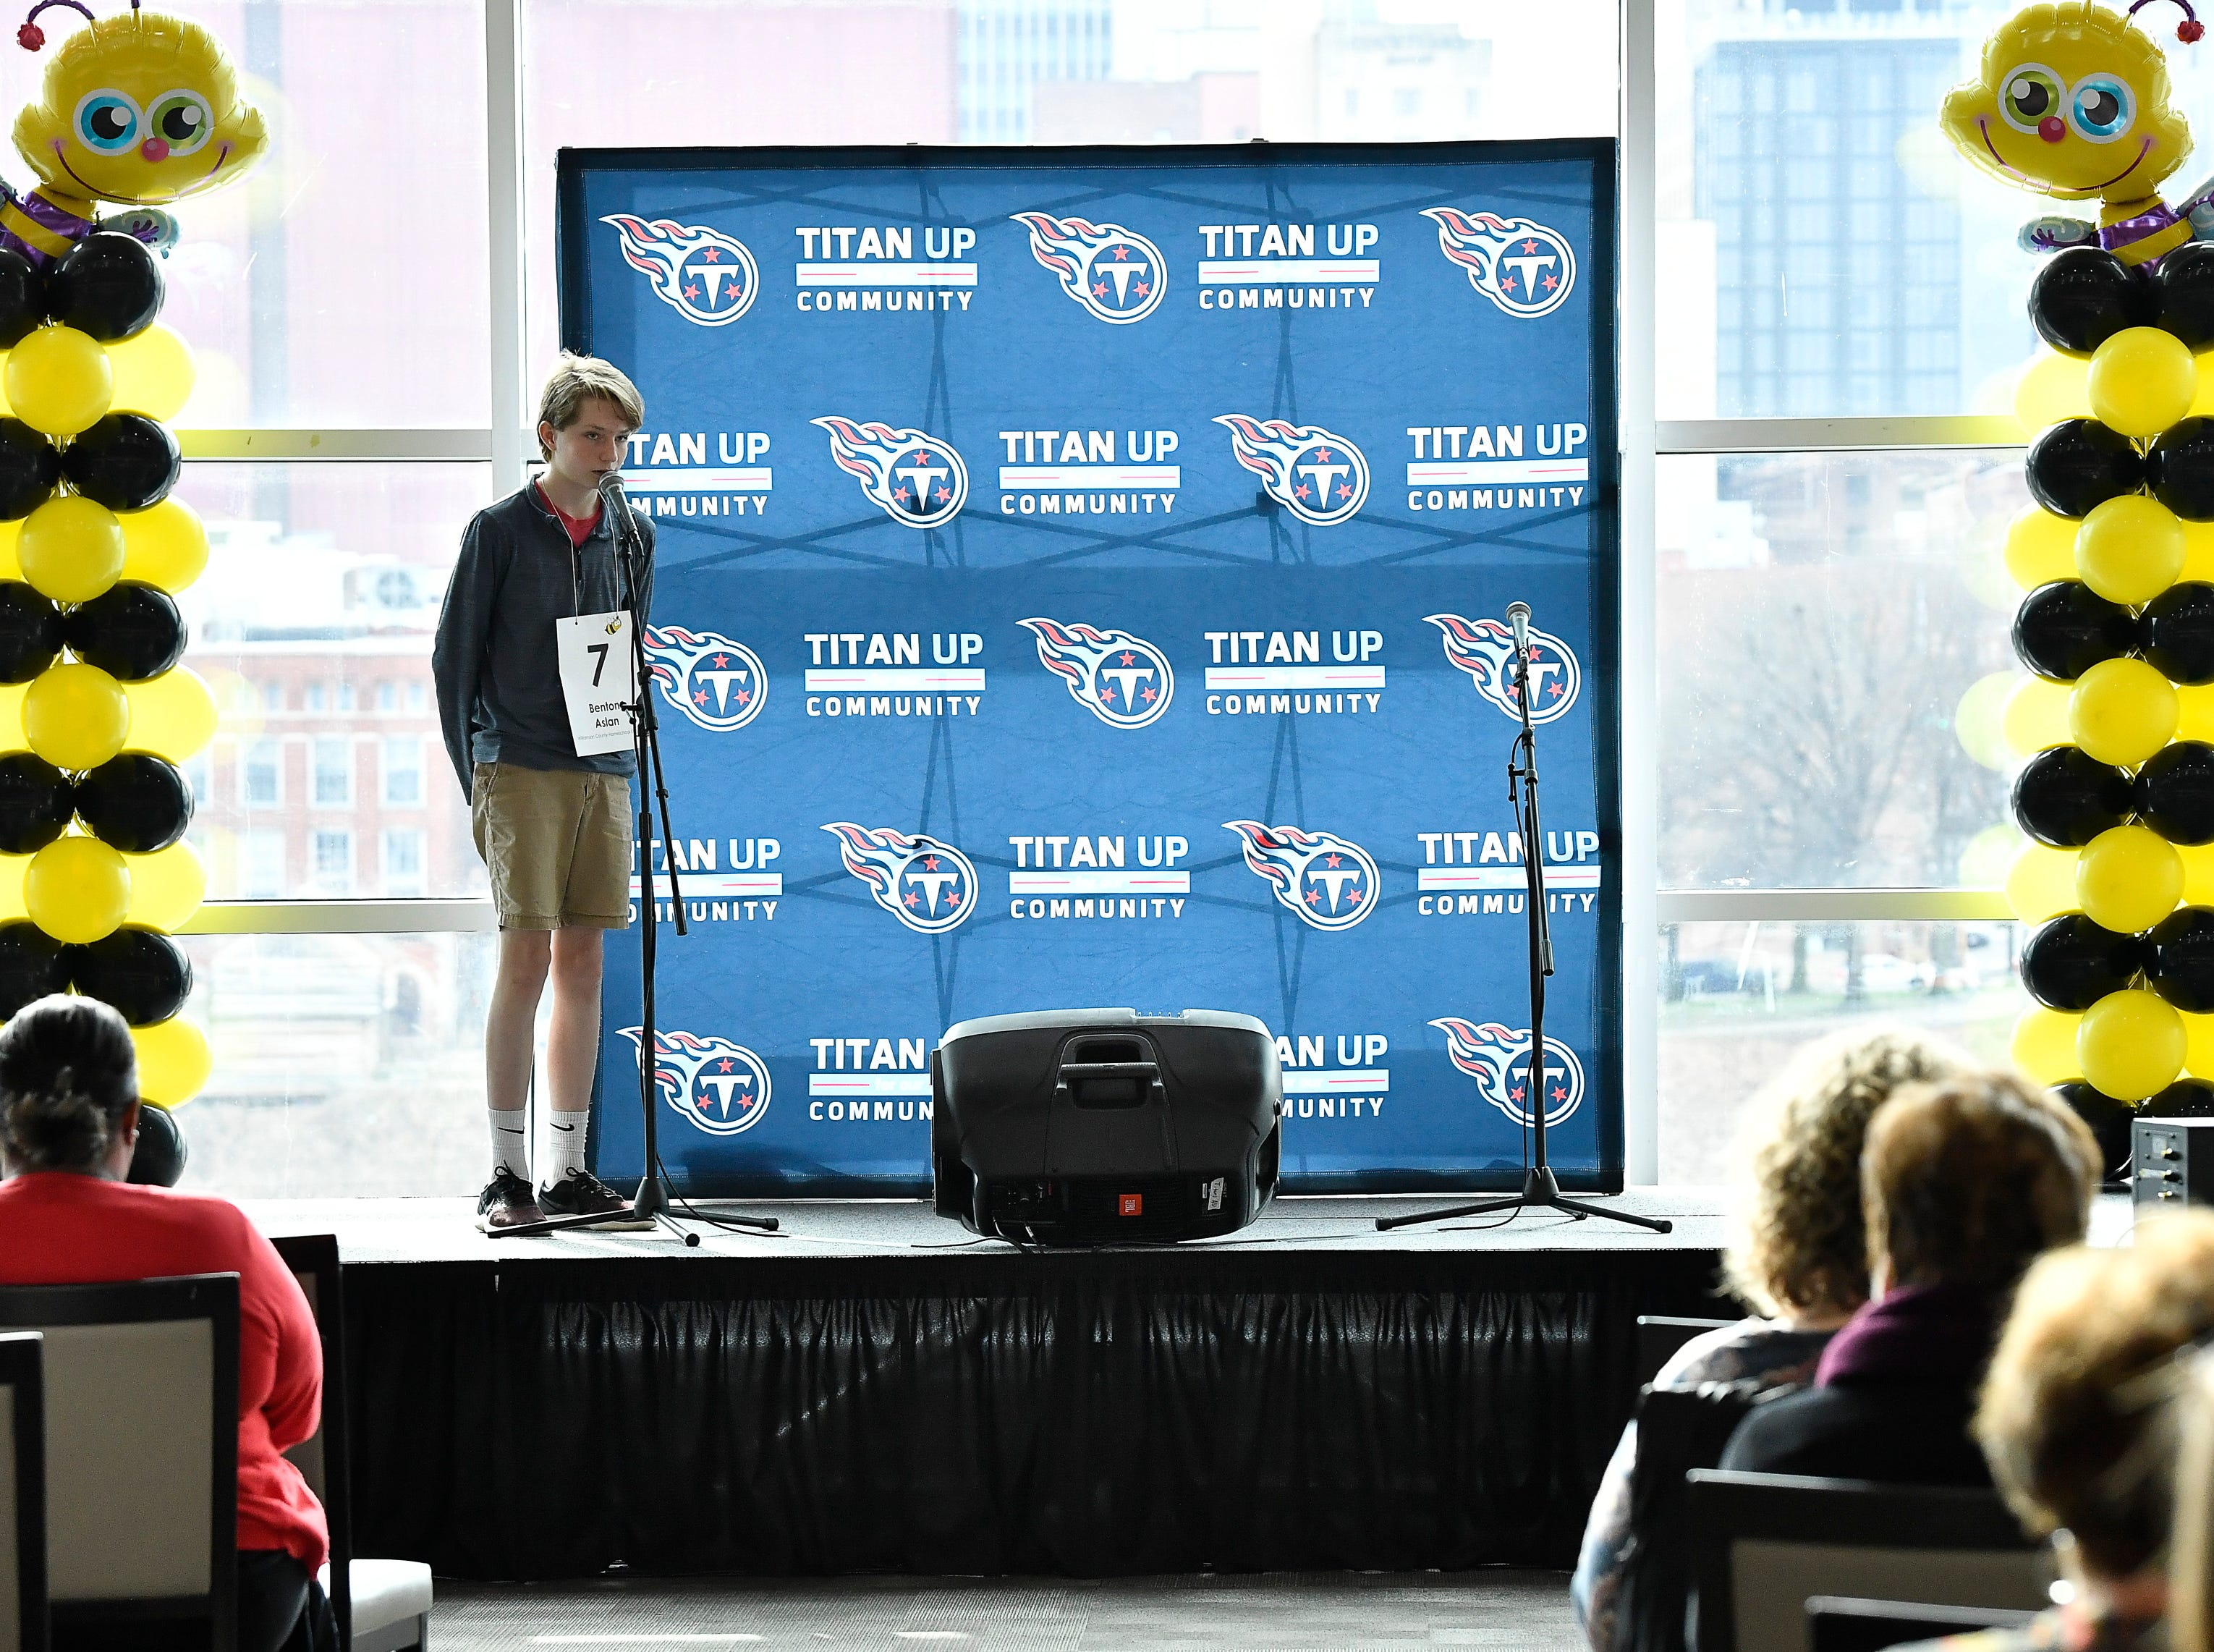 Benton Aslan competes in the Tennessee Titans Regional Spelling Bee at Nissan Stadium Saturday, Feb. 16, 2019 in Nashville, Tenn.